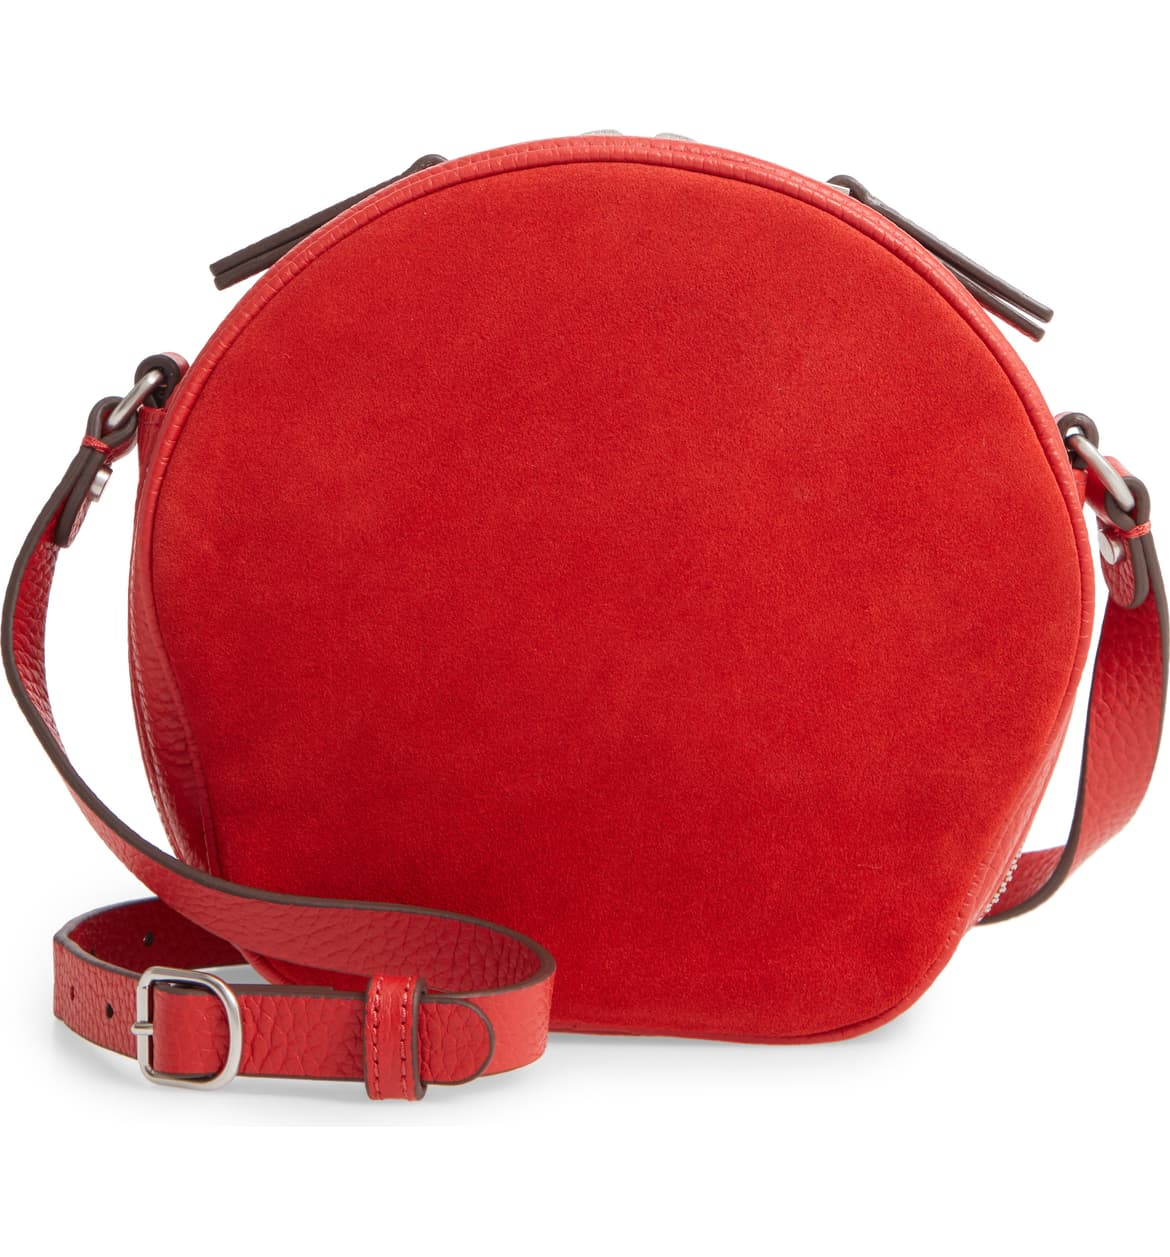 "<p>This cleanly styled round crossbody is shaped from grainy leather and features convenient pockets to keep you organized. $129.{&nbsp;}<a  href=""https://shop.nordstrom.com/s/treasure-bond-shelby-round-leather-crossbody-bag/5262348/full?origin=keywordsearch-personalizedsort&breadcrumb=Home%2FAll%20Results&color=red%20bloom"" target=""_blank"" title=""https://shop.nordstrom.com/s/treasure-bond-shelby-round-leather-crossbody-bag/5262348/full?origin=keywordsearch-personalizedsort&breadcrumb=Home%2FAll%20Results&color=red%20bloom"">Shop it{&nbsp;}</a>(Image: Nordstrom){&nbsp;}</p>"